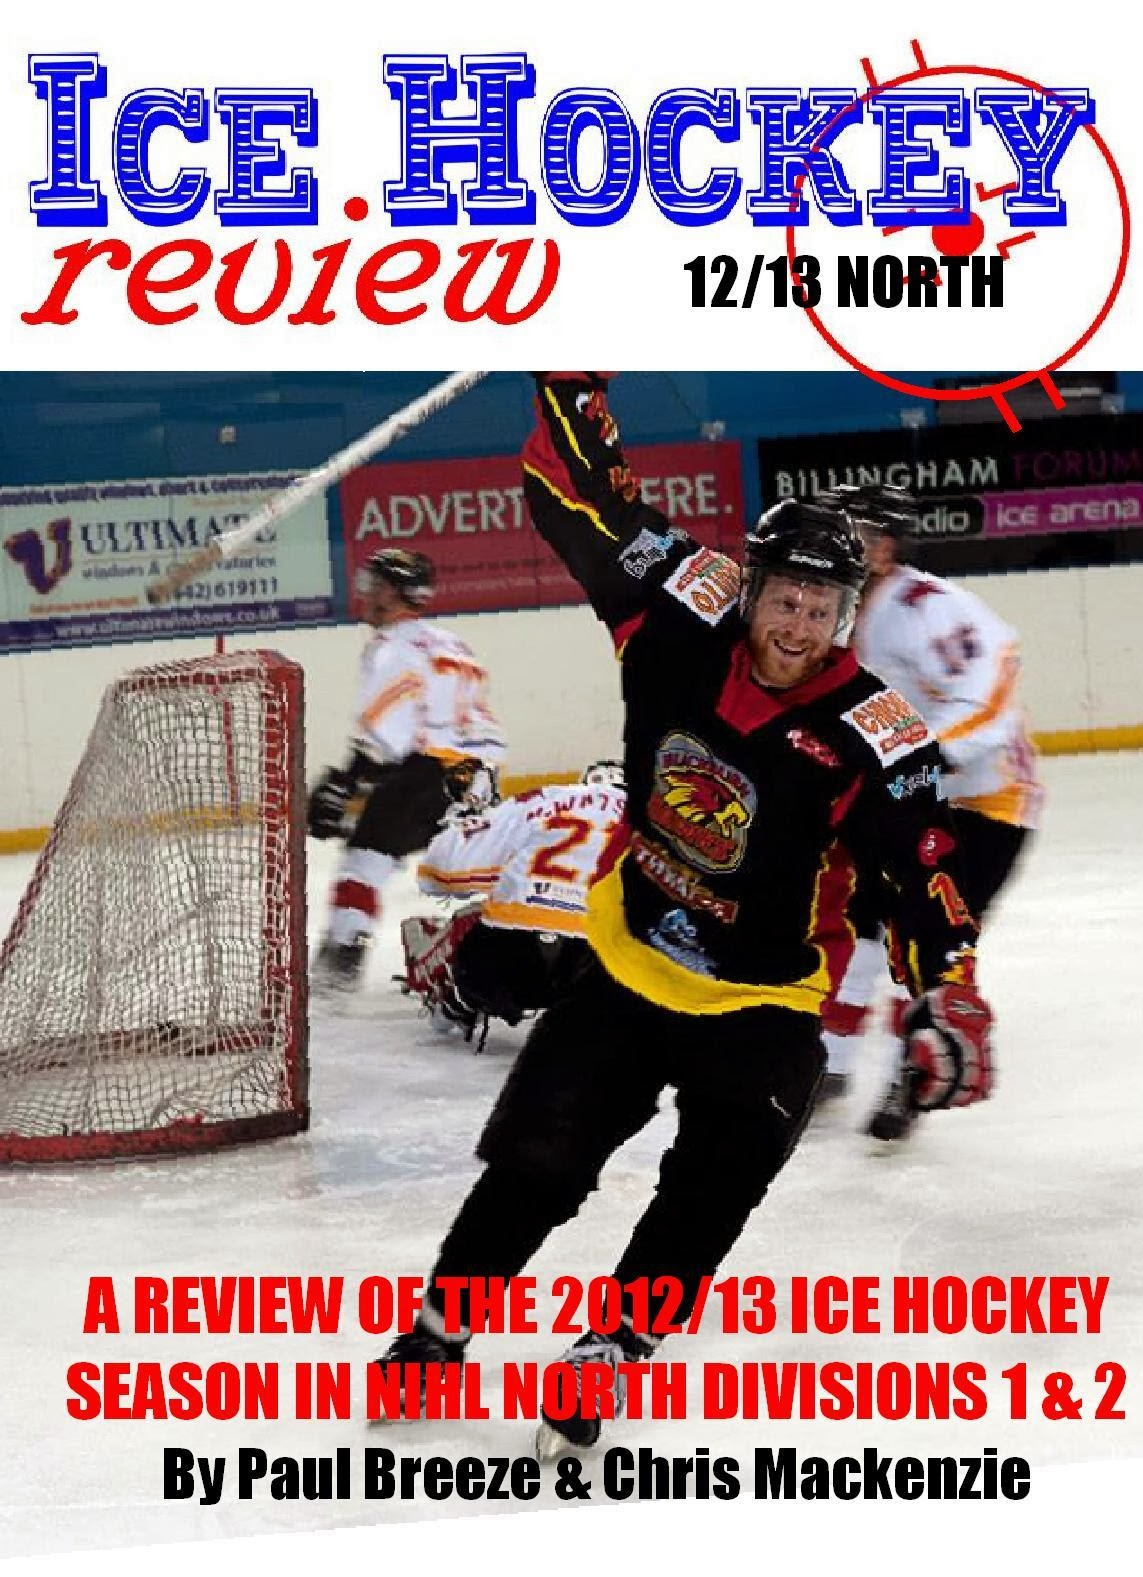 2012/13 EDITION - BACK COPIES AVAILABLE